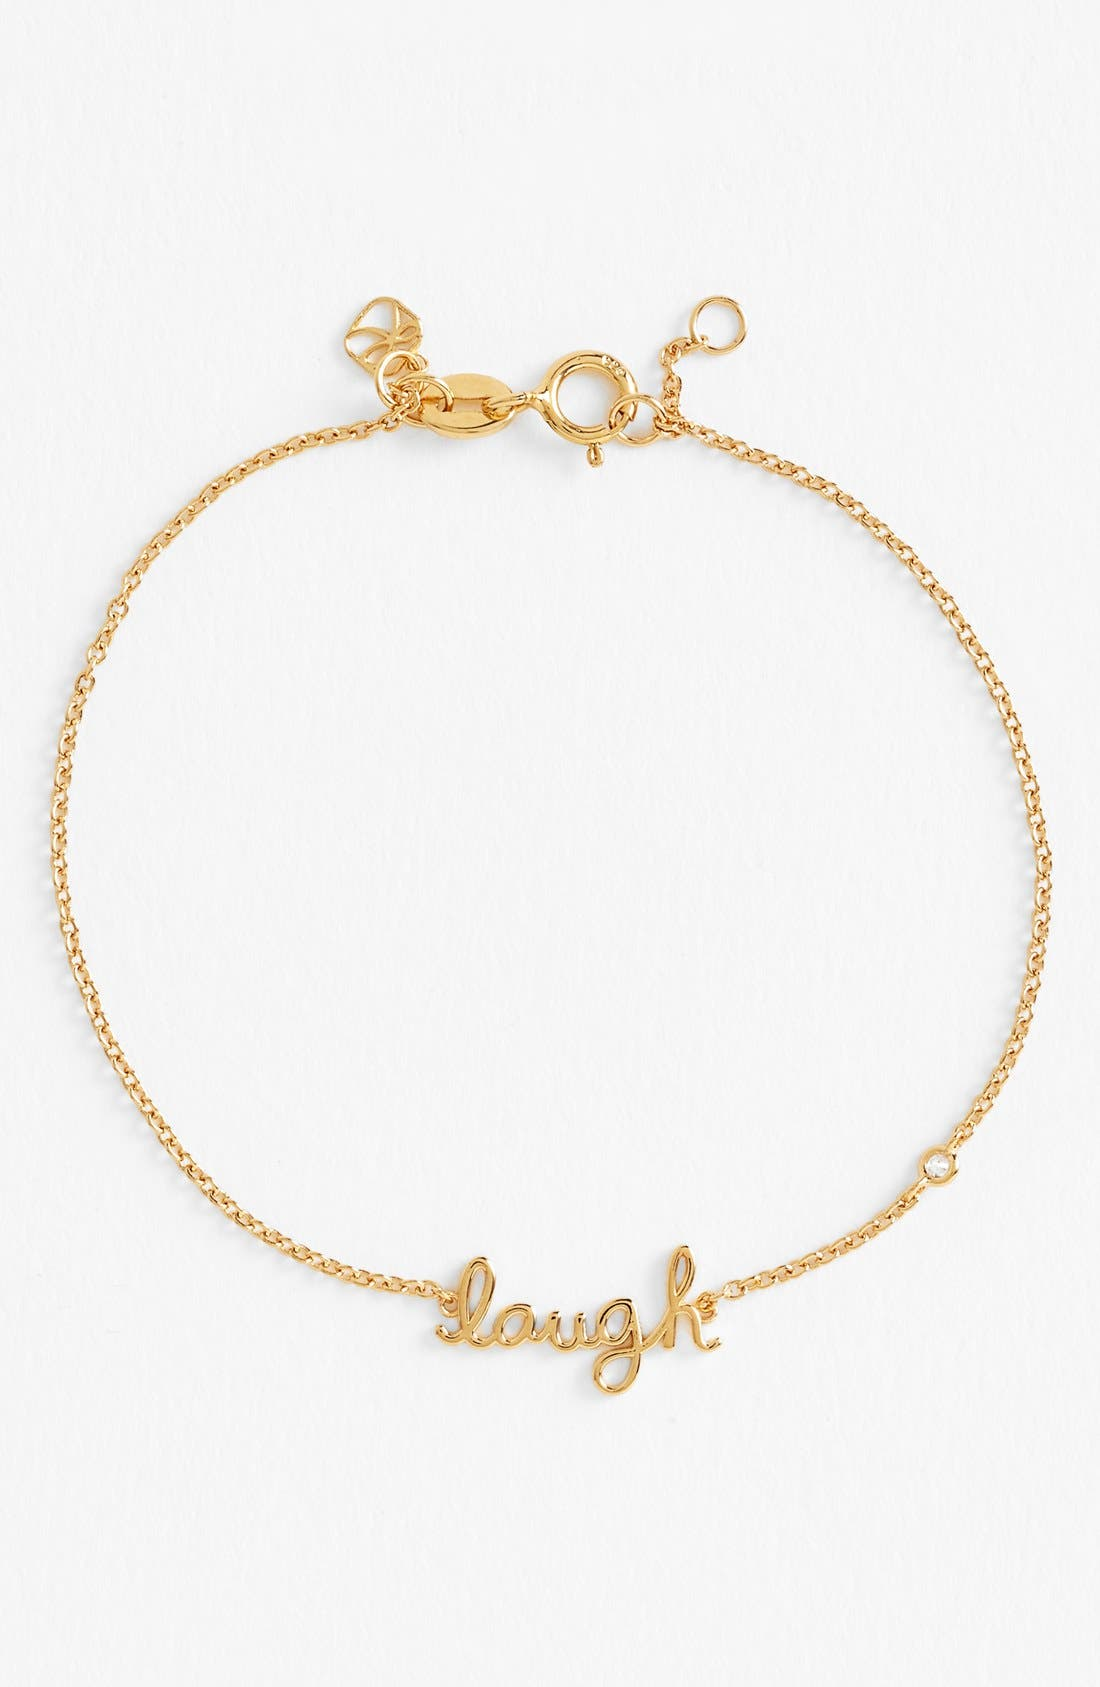 Main Image - SHY by Sydney Evan 'Laugh' Bracelet